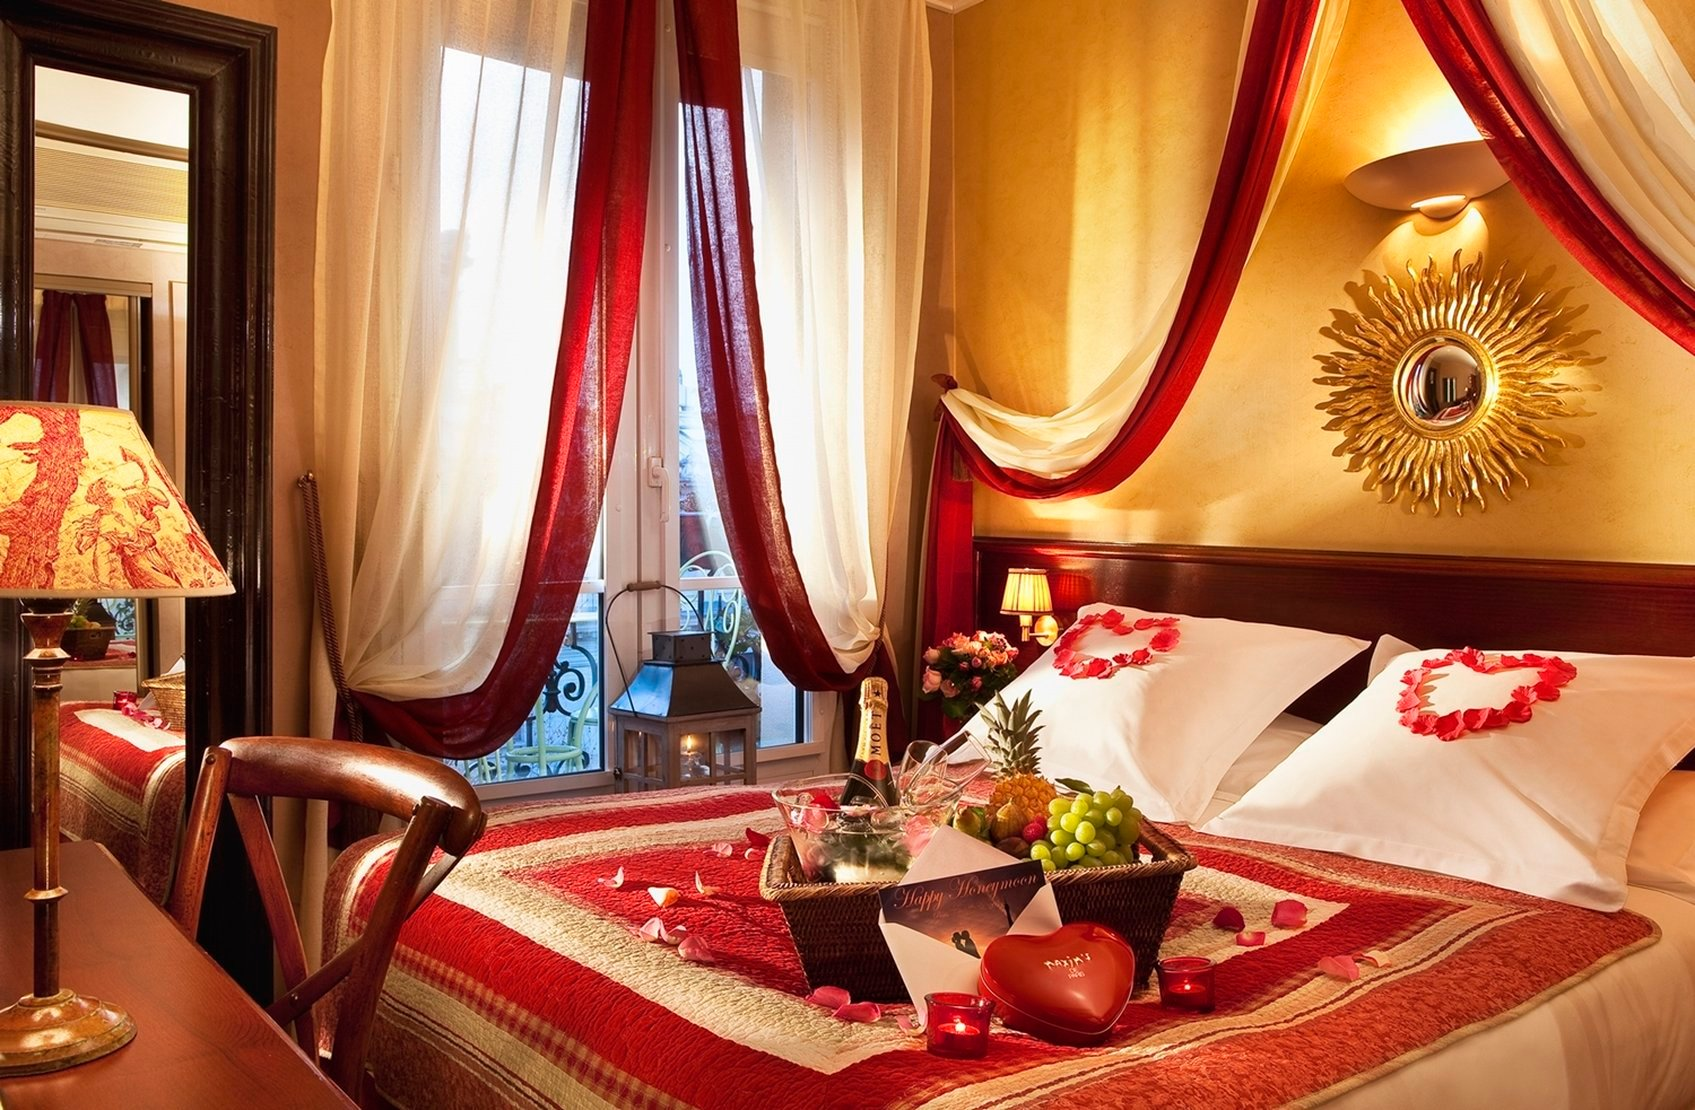 Romantic Getaways  Trips Couples Spa Days Date Nights